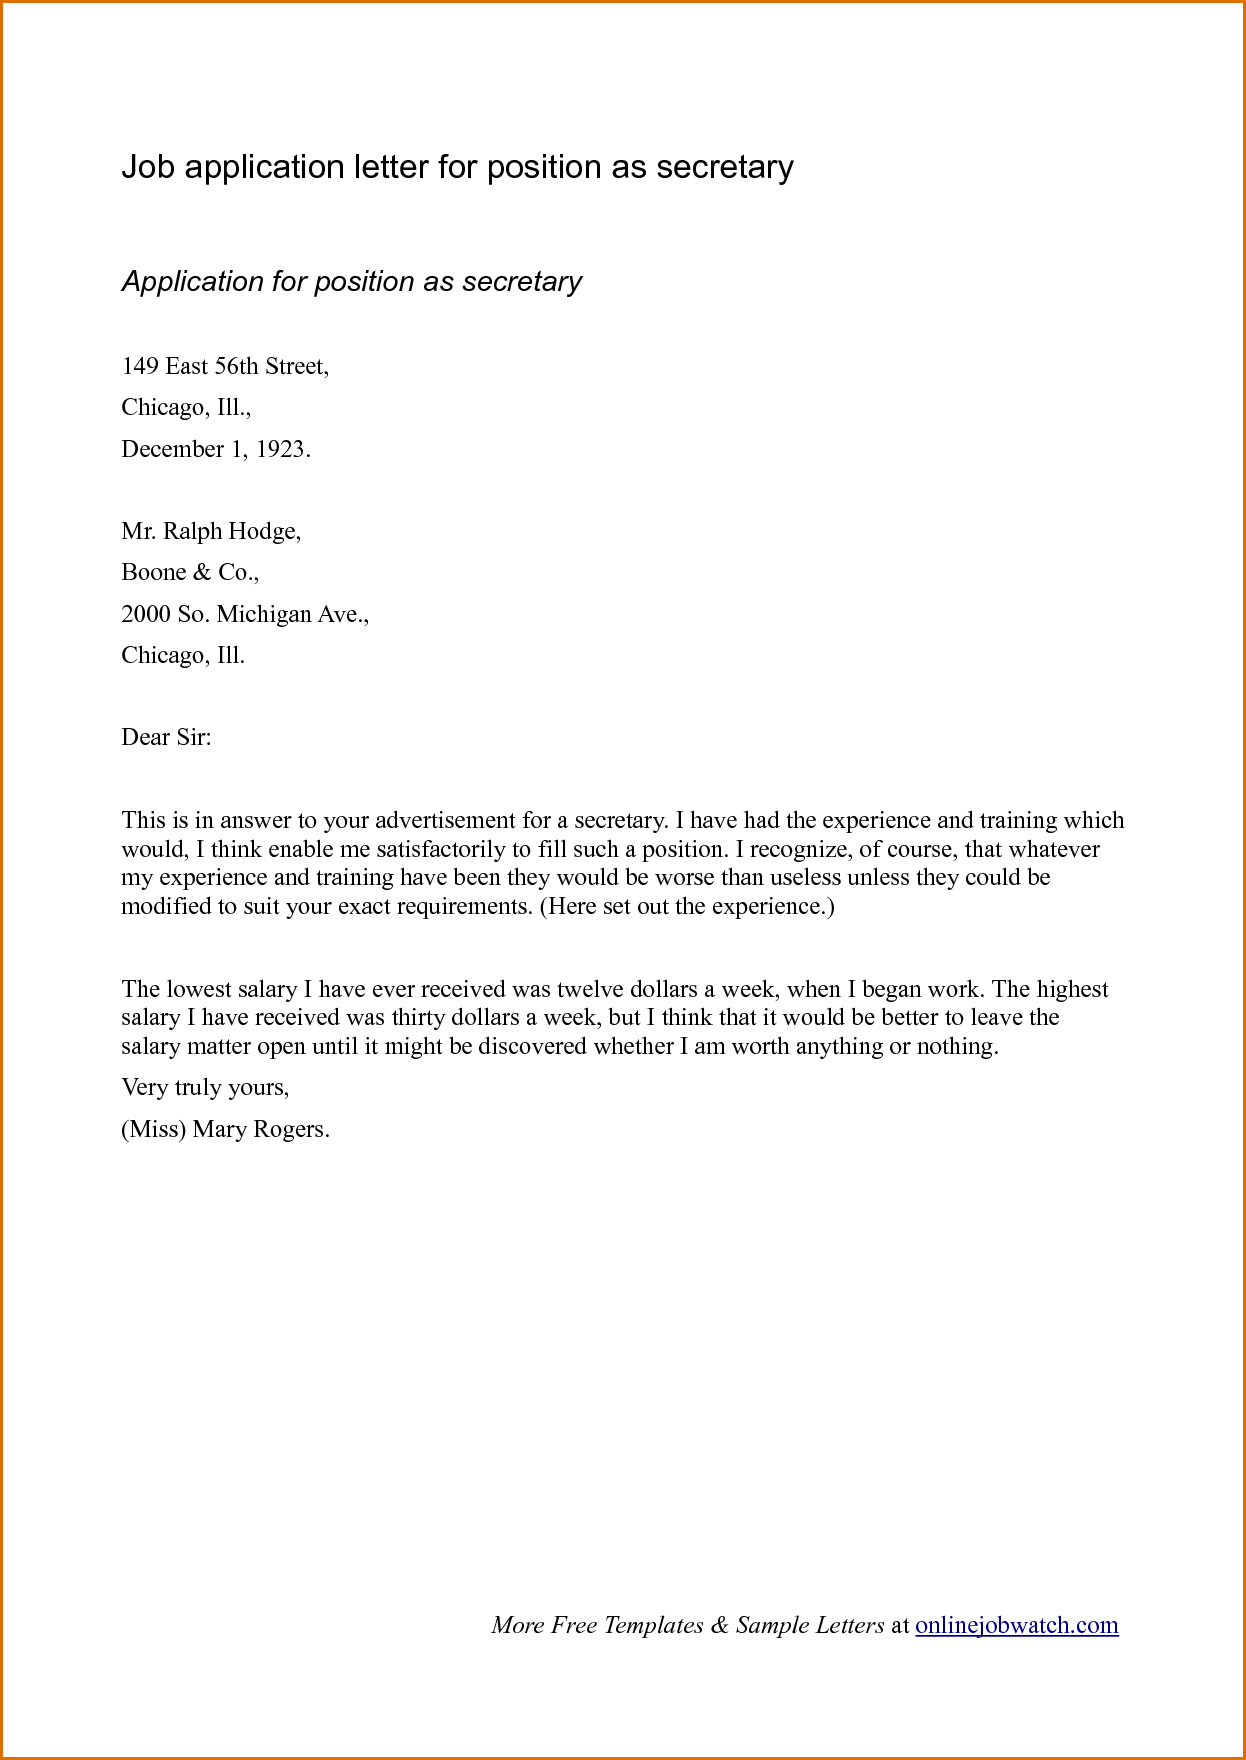 cover letter for any open position - sample cover letter format for job application